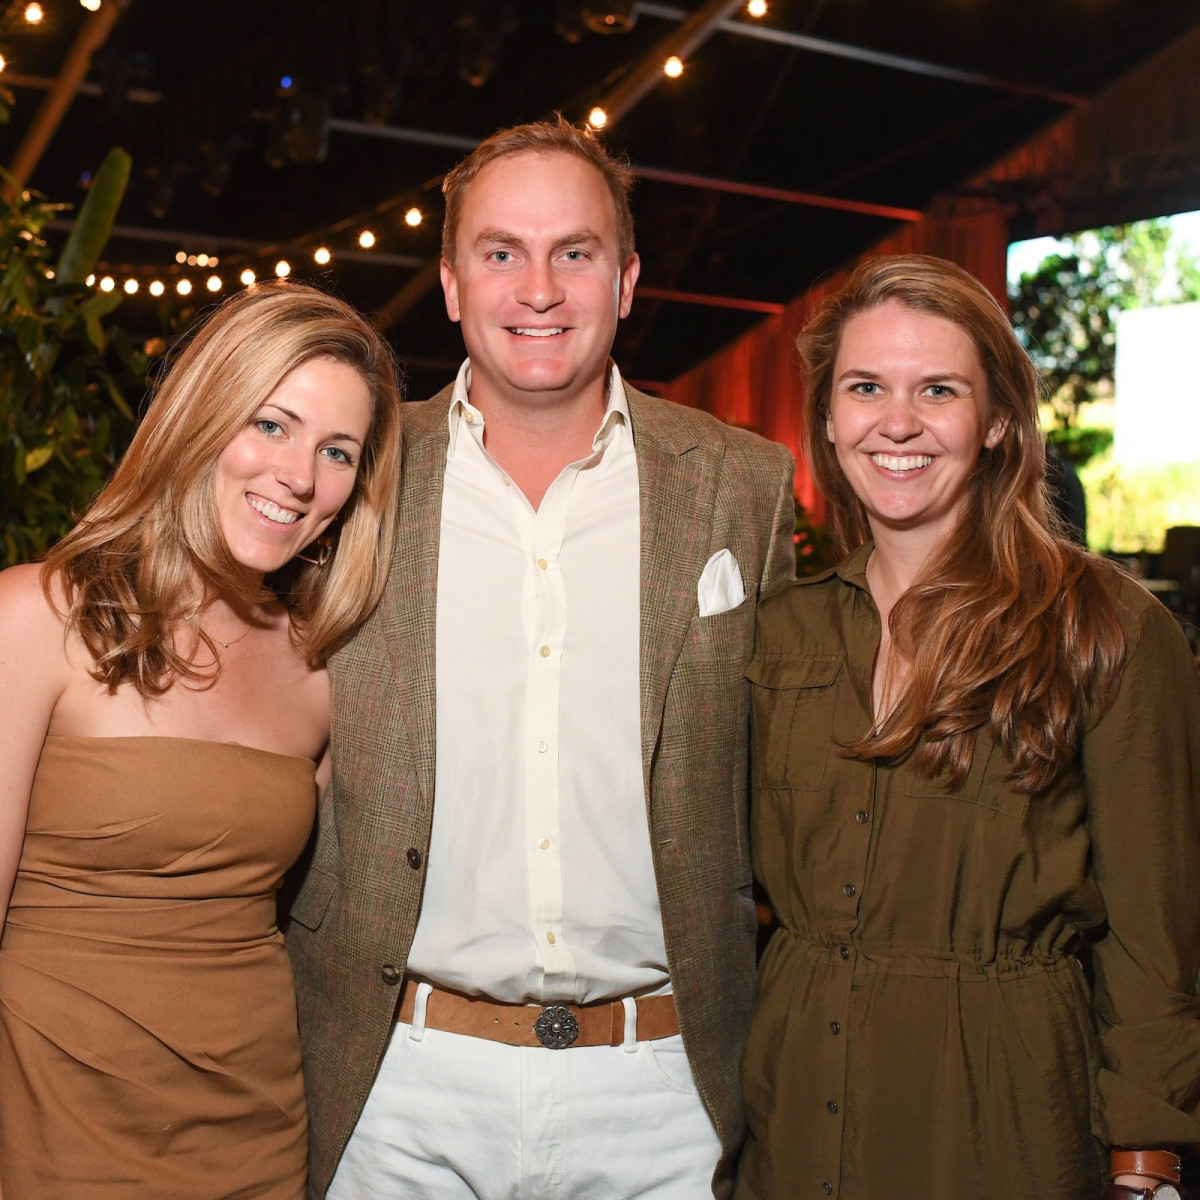 Lucie Harte, Rupert Gerard and Mandy Hixon at Nature Conservancy Gala